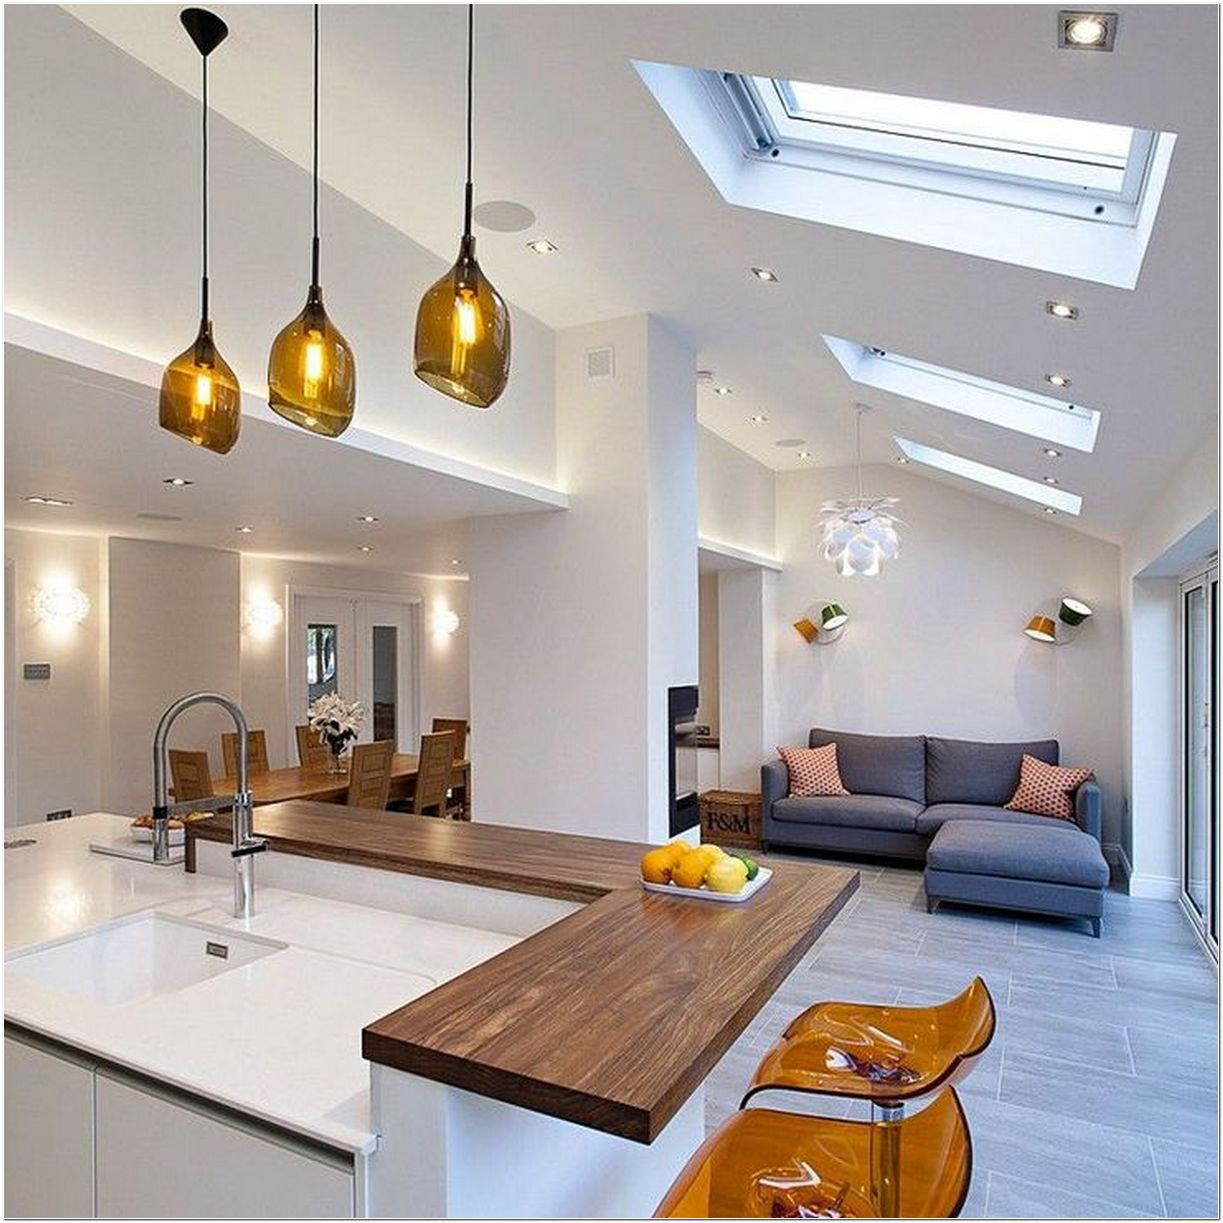 67 Upgrade Your Food Service Business With Innovative Kitchen Extension Ideas